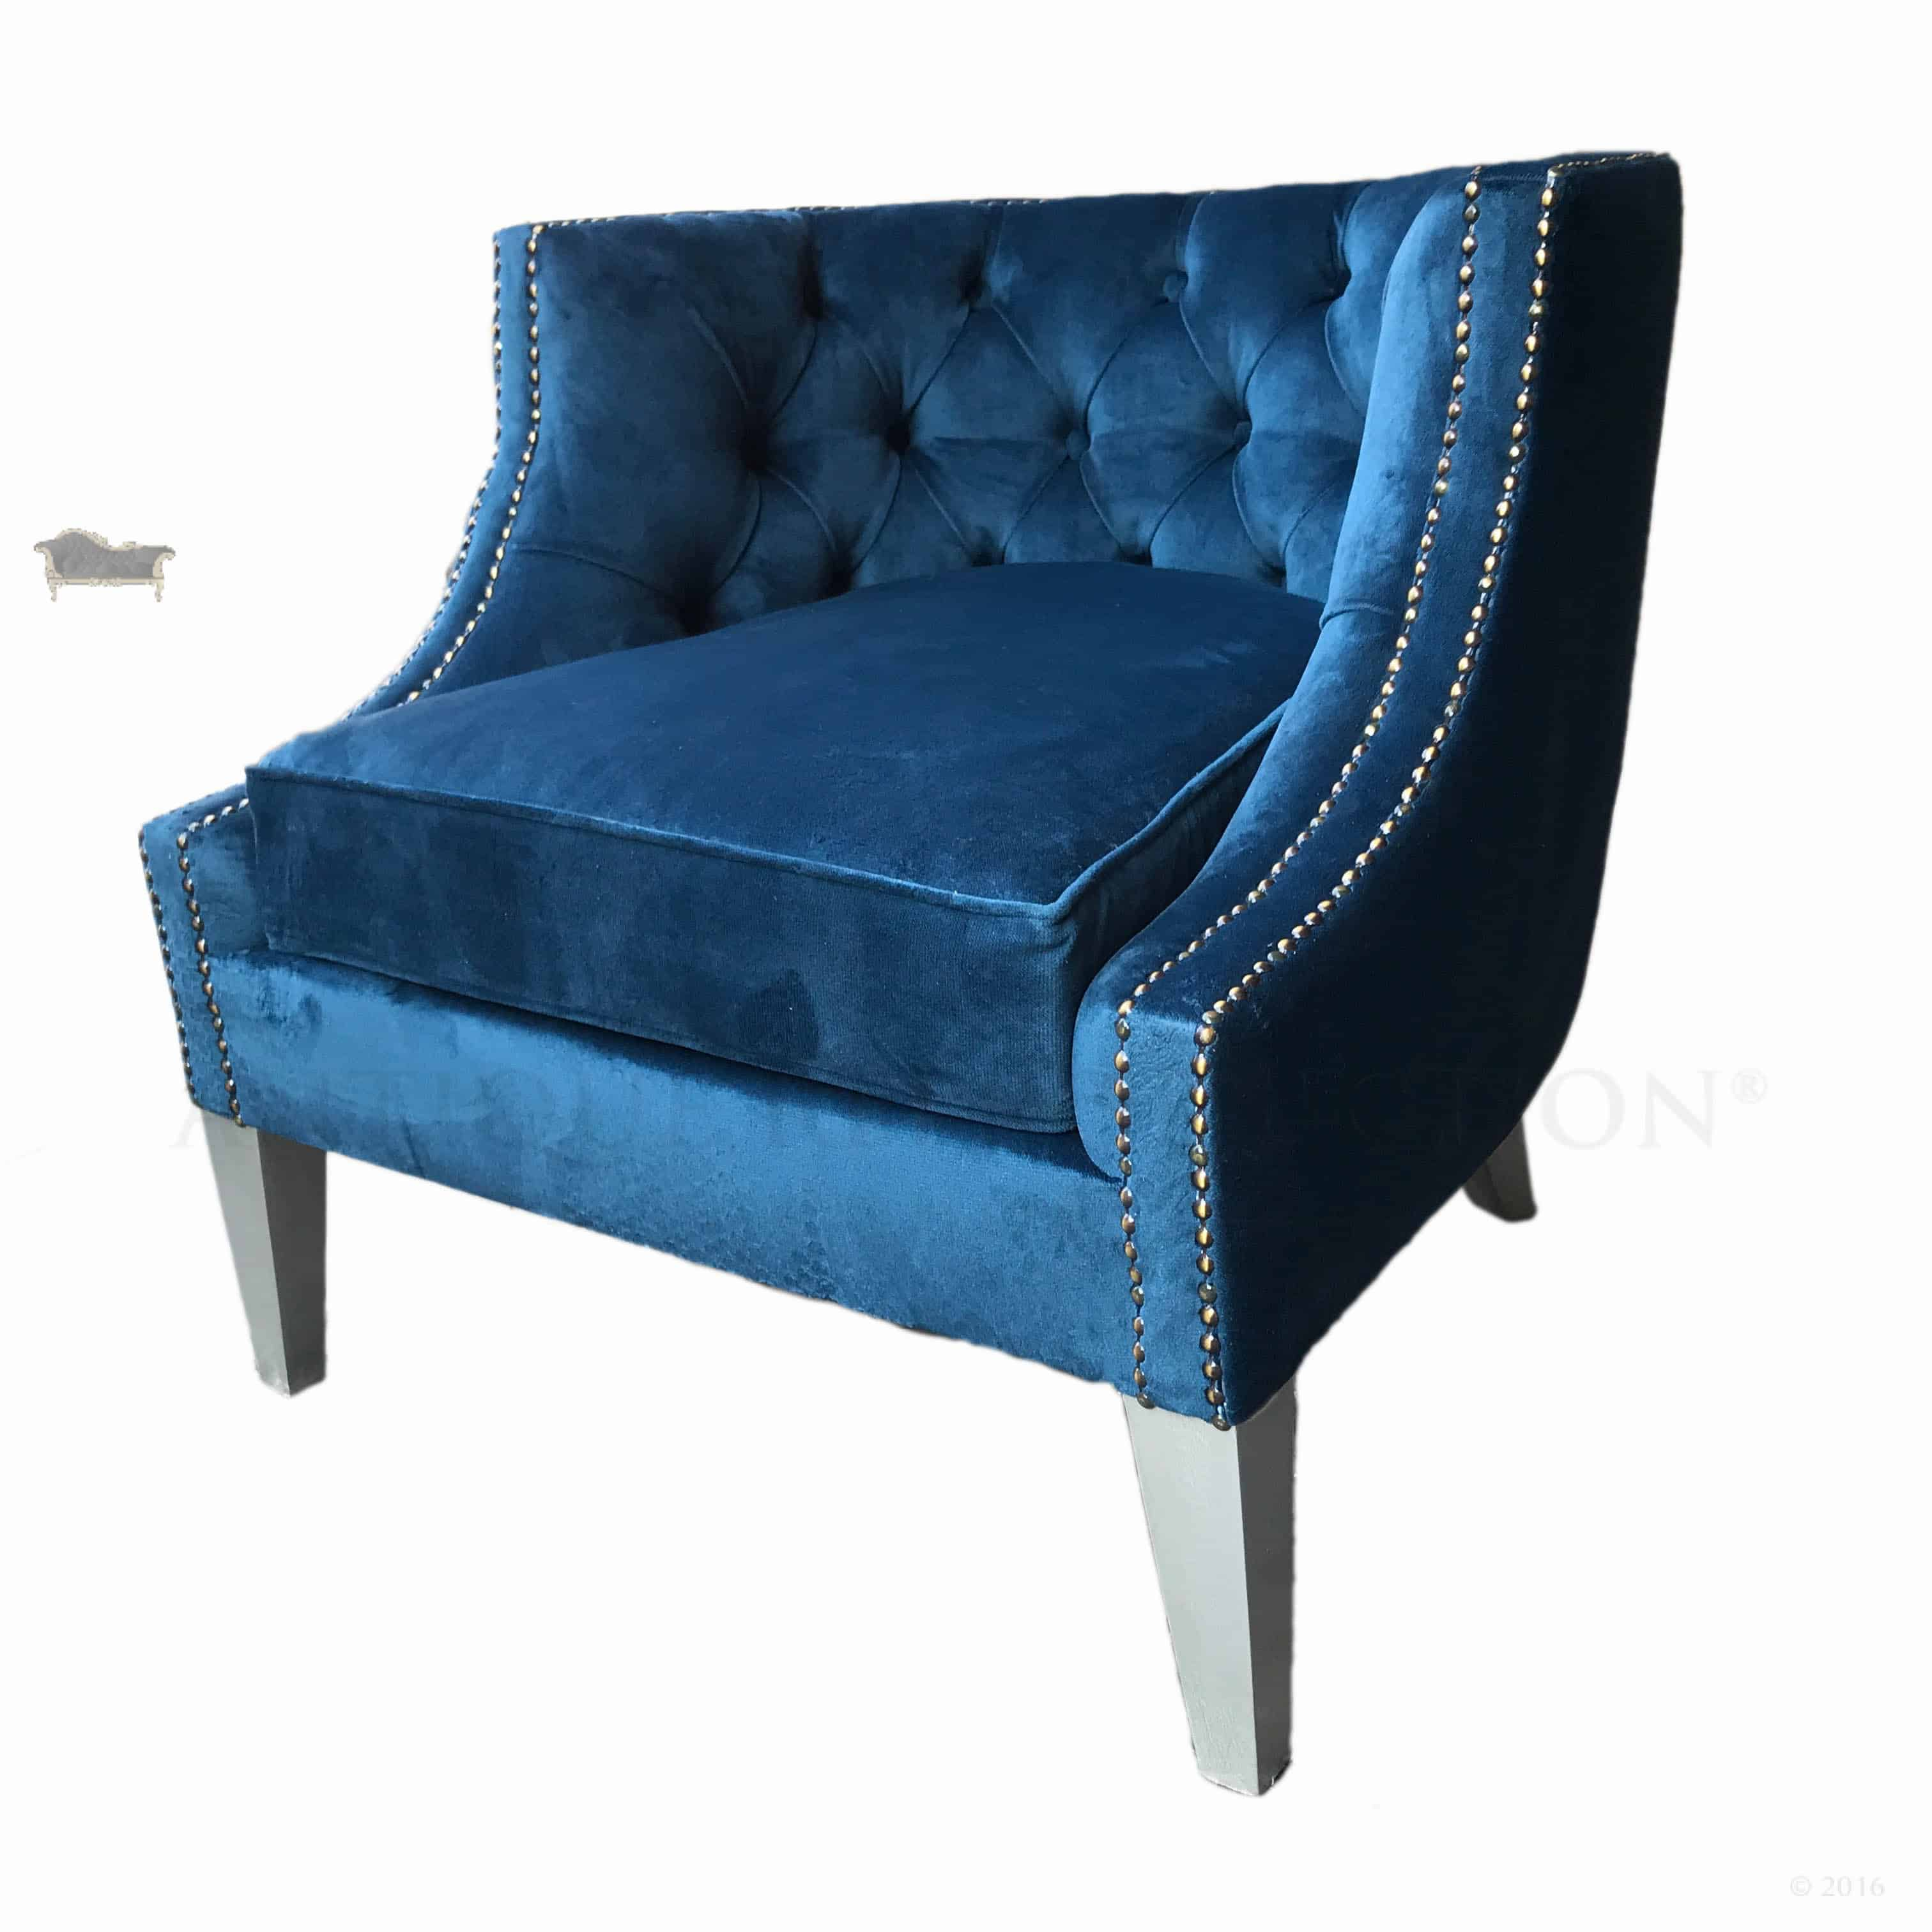 Classic Designer Chair Classic Chesterfield Modern Tub Chair Upholstered In